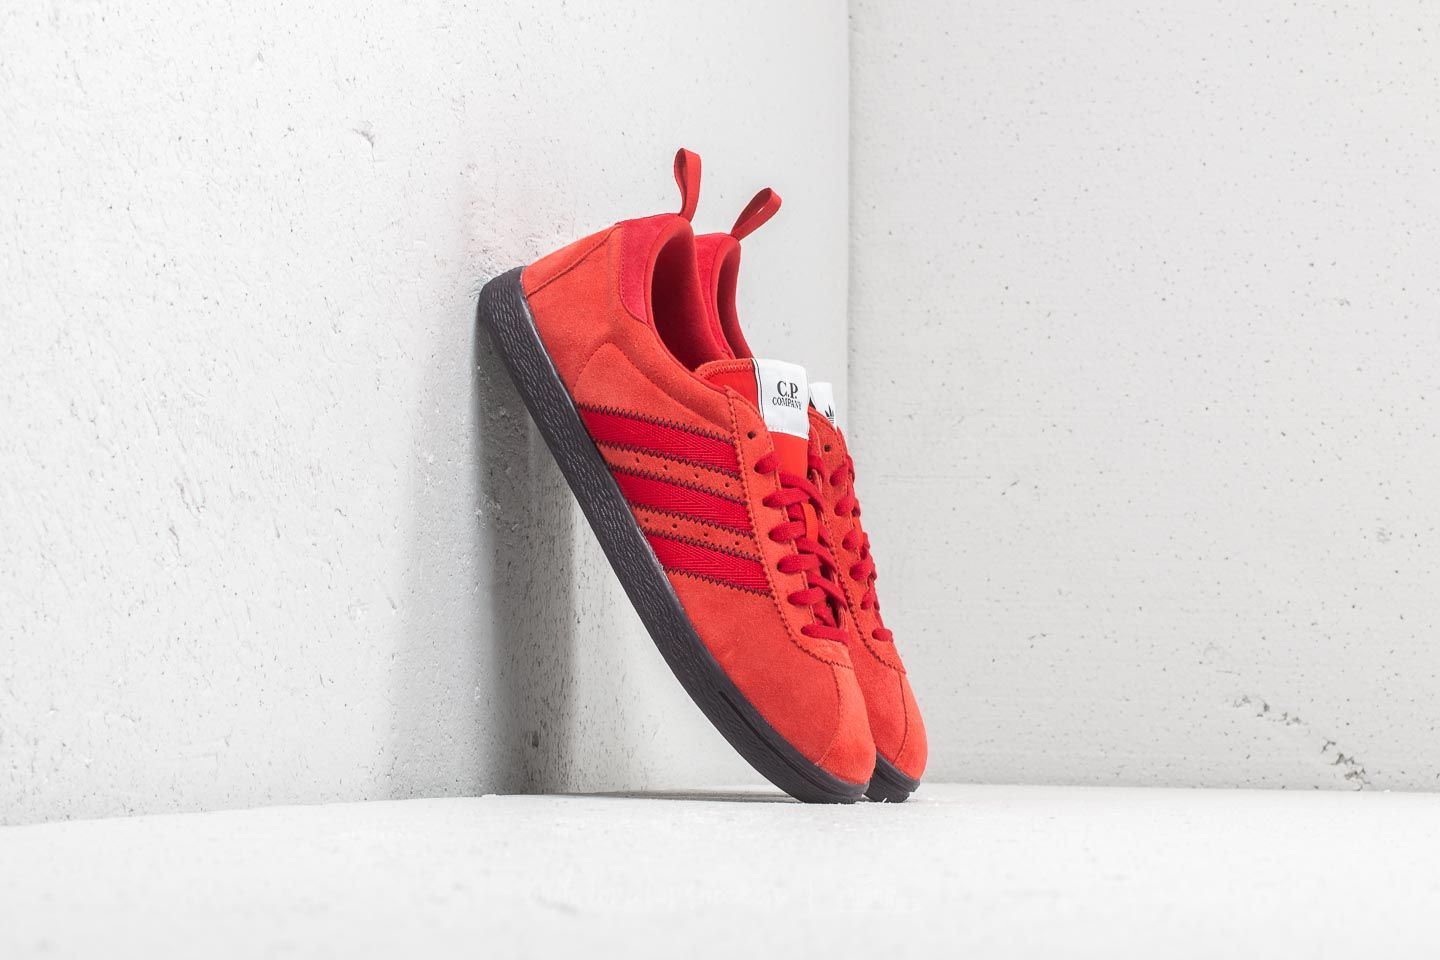 adidas x C.P. CompanyStreet Brick Red Nitro Surreal Red